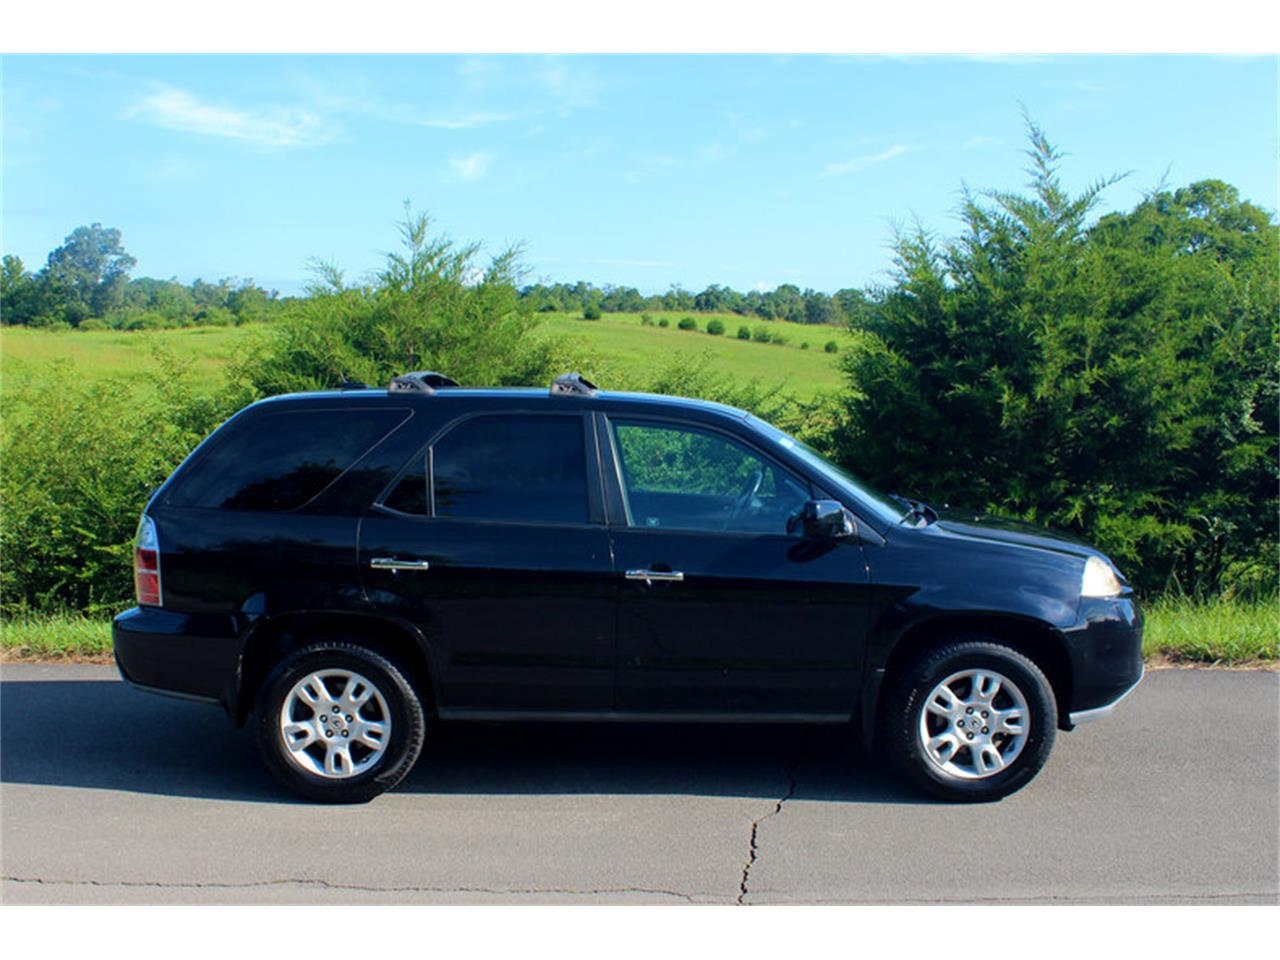 Large Picture of 2005 MDX located in Lenoir City Tennessee - $3,995.00 Offered by Smoky Mountain Traders - O91K